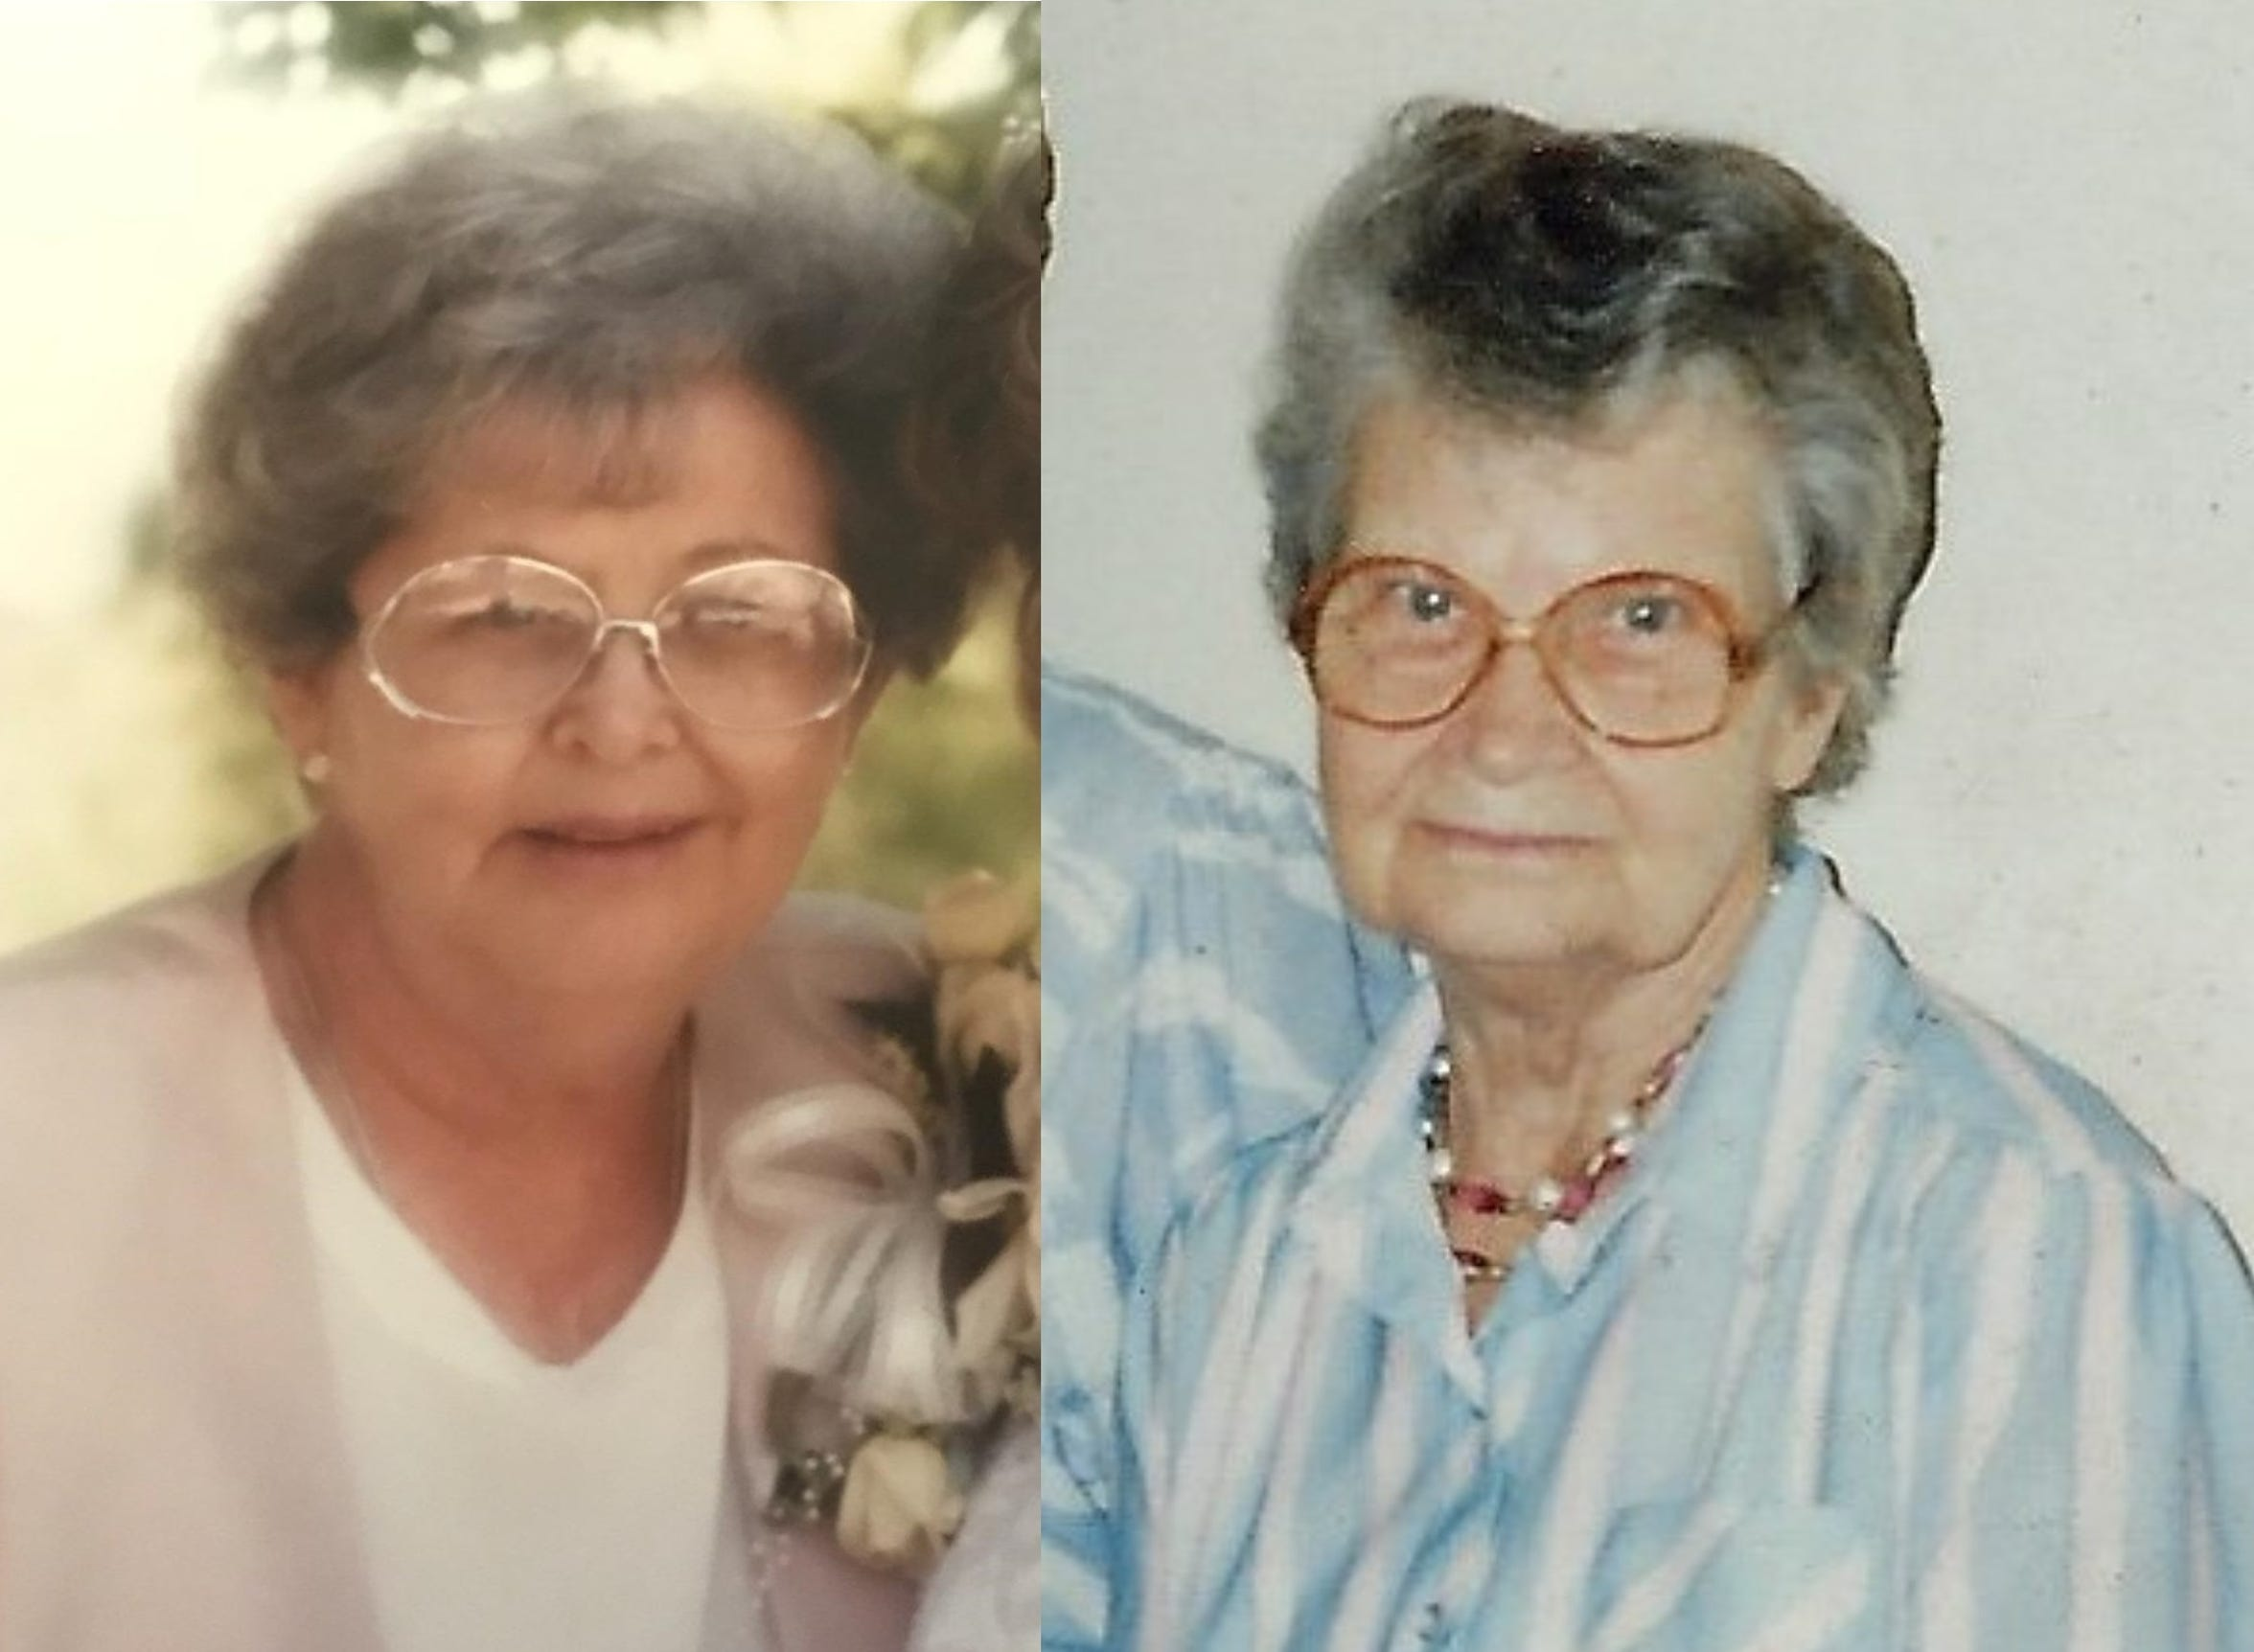 Nelda Brown, left, is believed to be the the oldest child of Annie Louise Holt Fulstone, right. Family believe Brown as a baby was separated from her mother soon after being born in Silver City in the 1930s. Both Brown and Fulstone died in the 1990s.